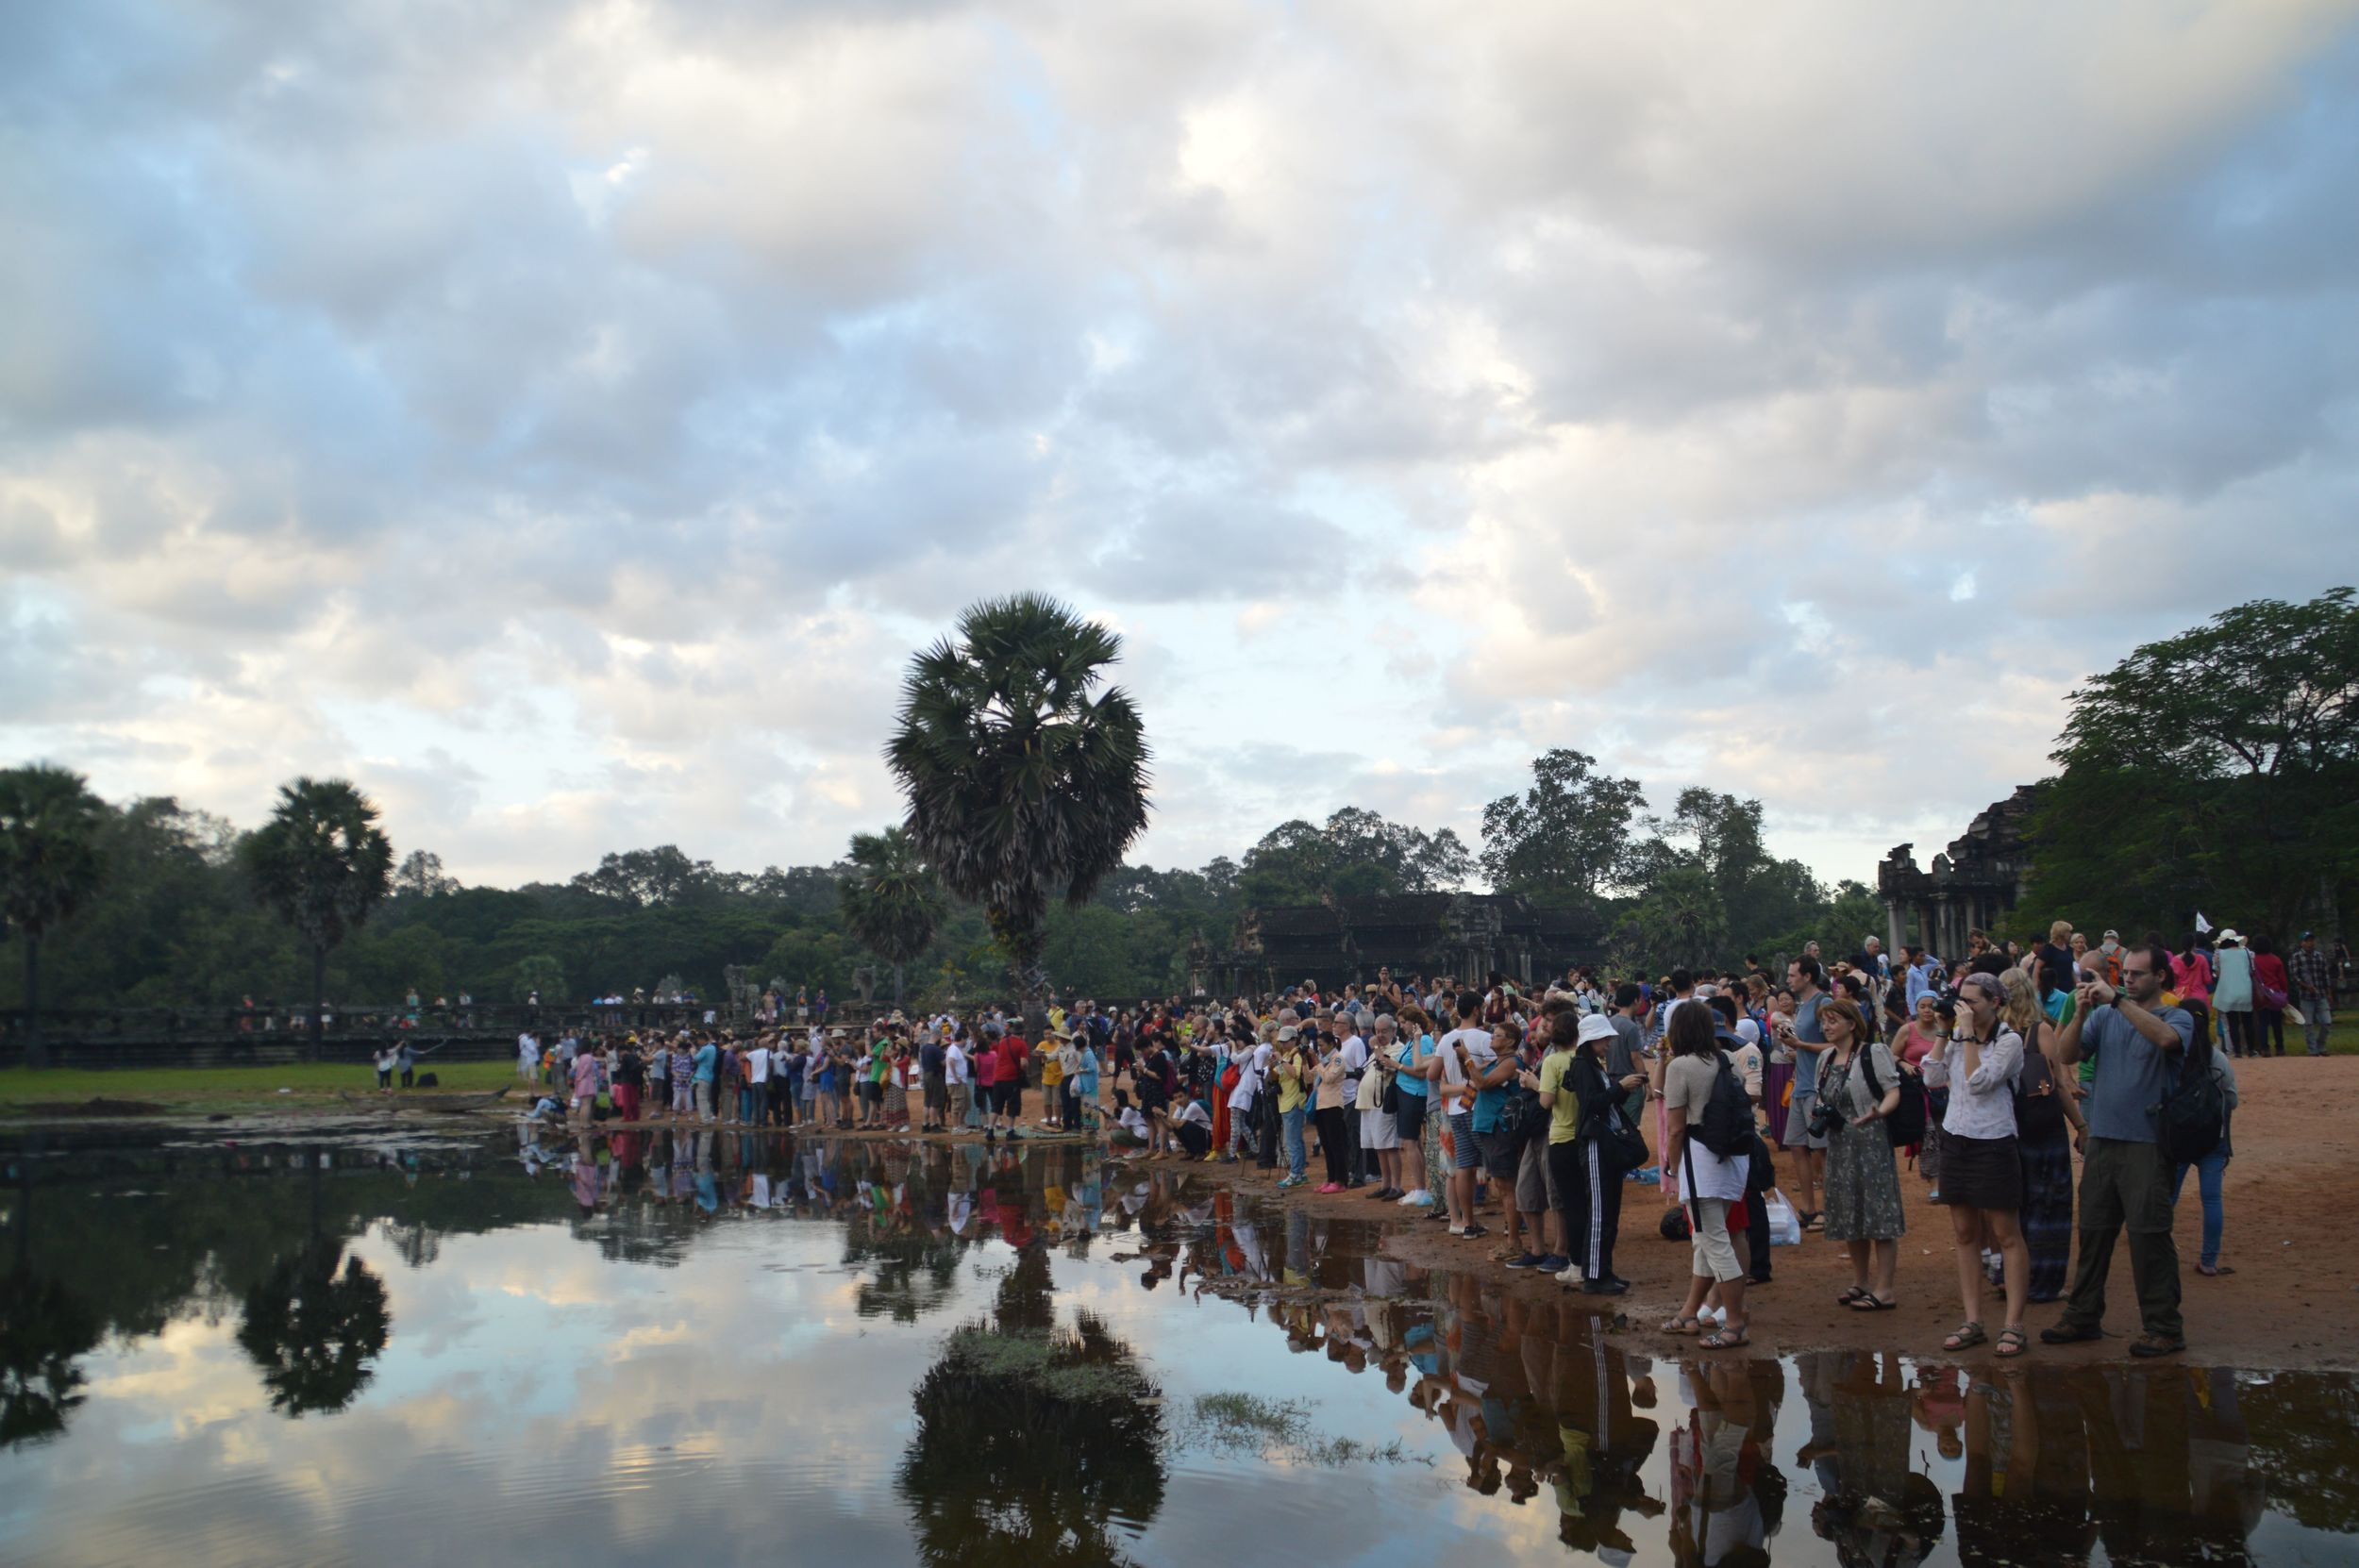 an overcrowded Angkor Wat at dawn